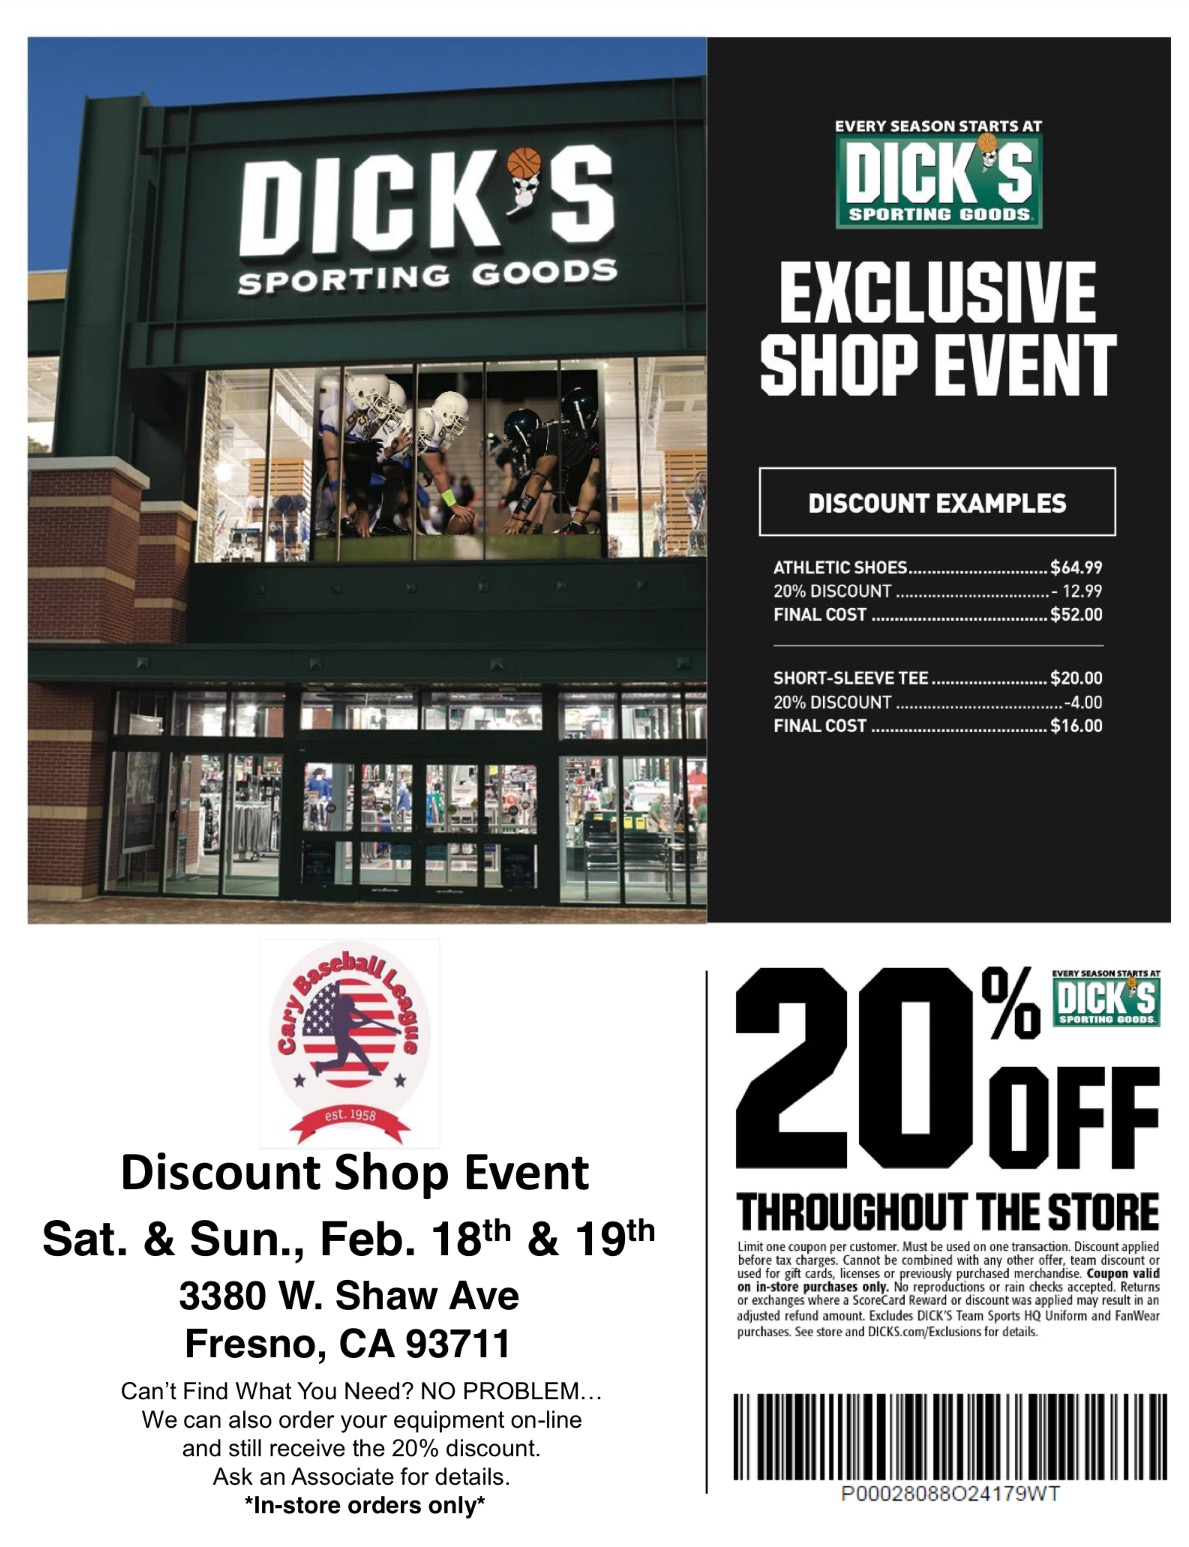 Discount Shopping Event at Dick's Sporting Goods